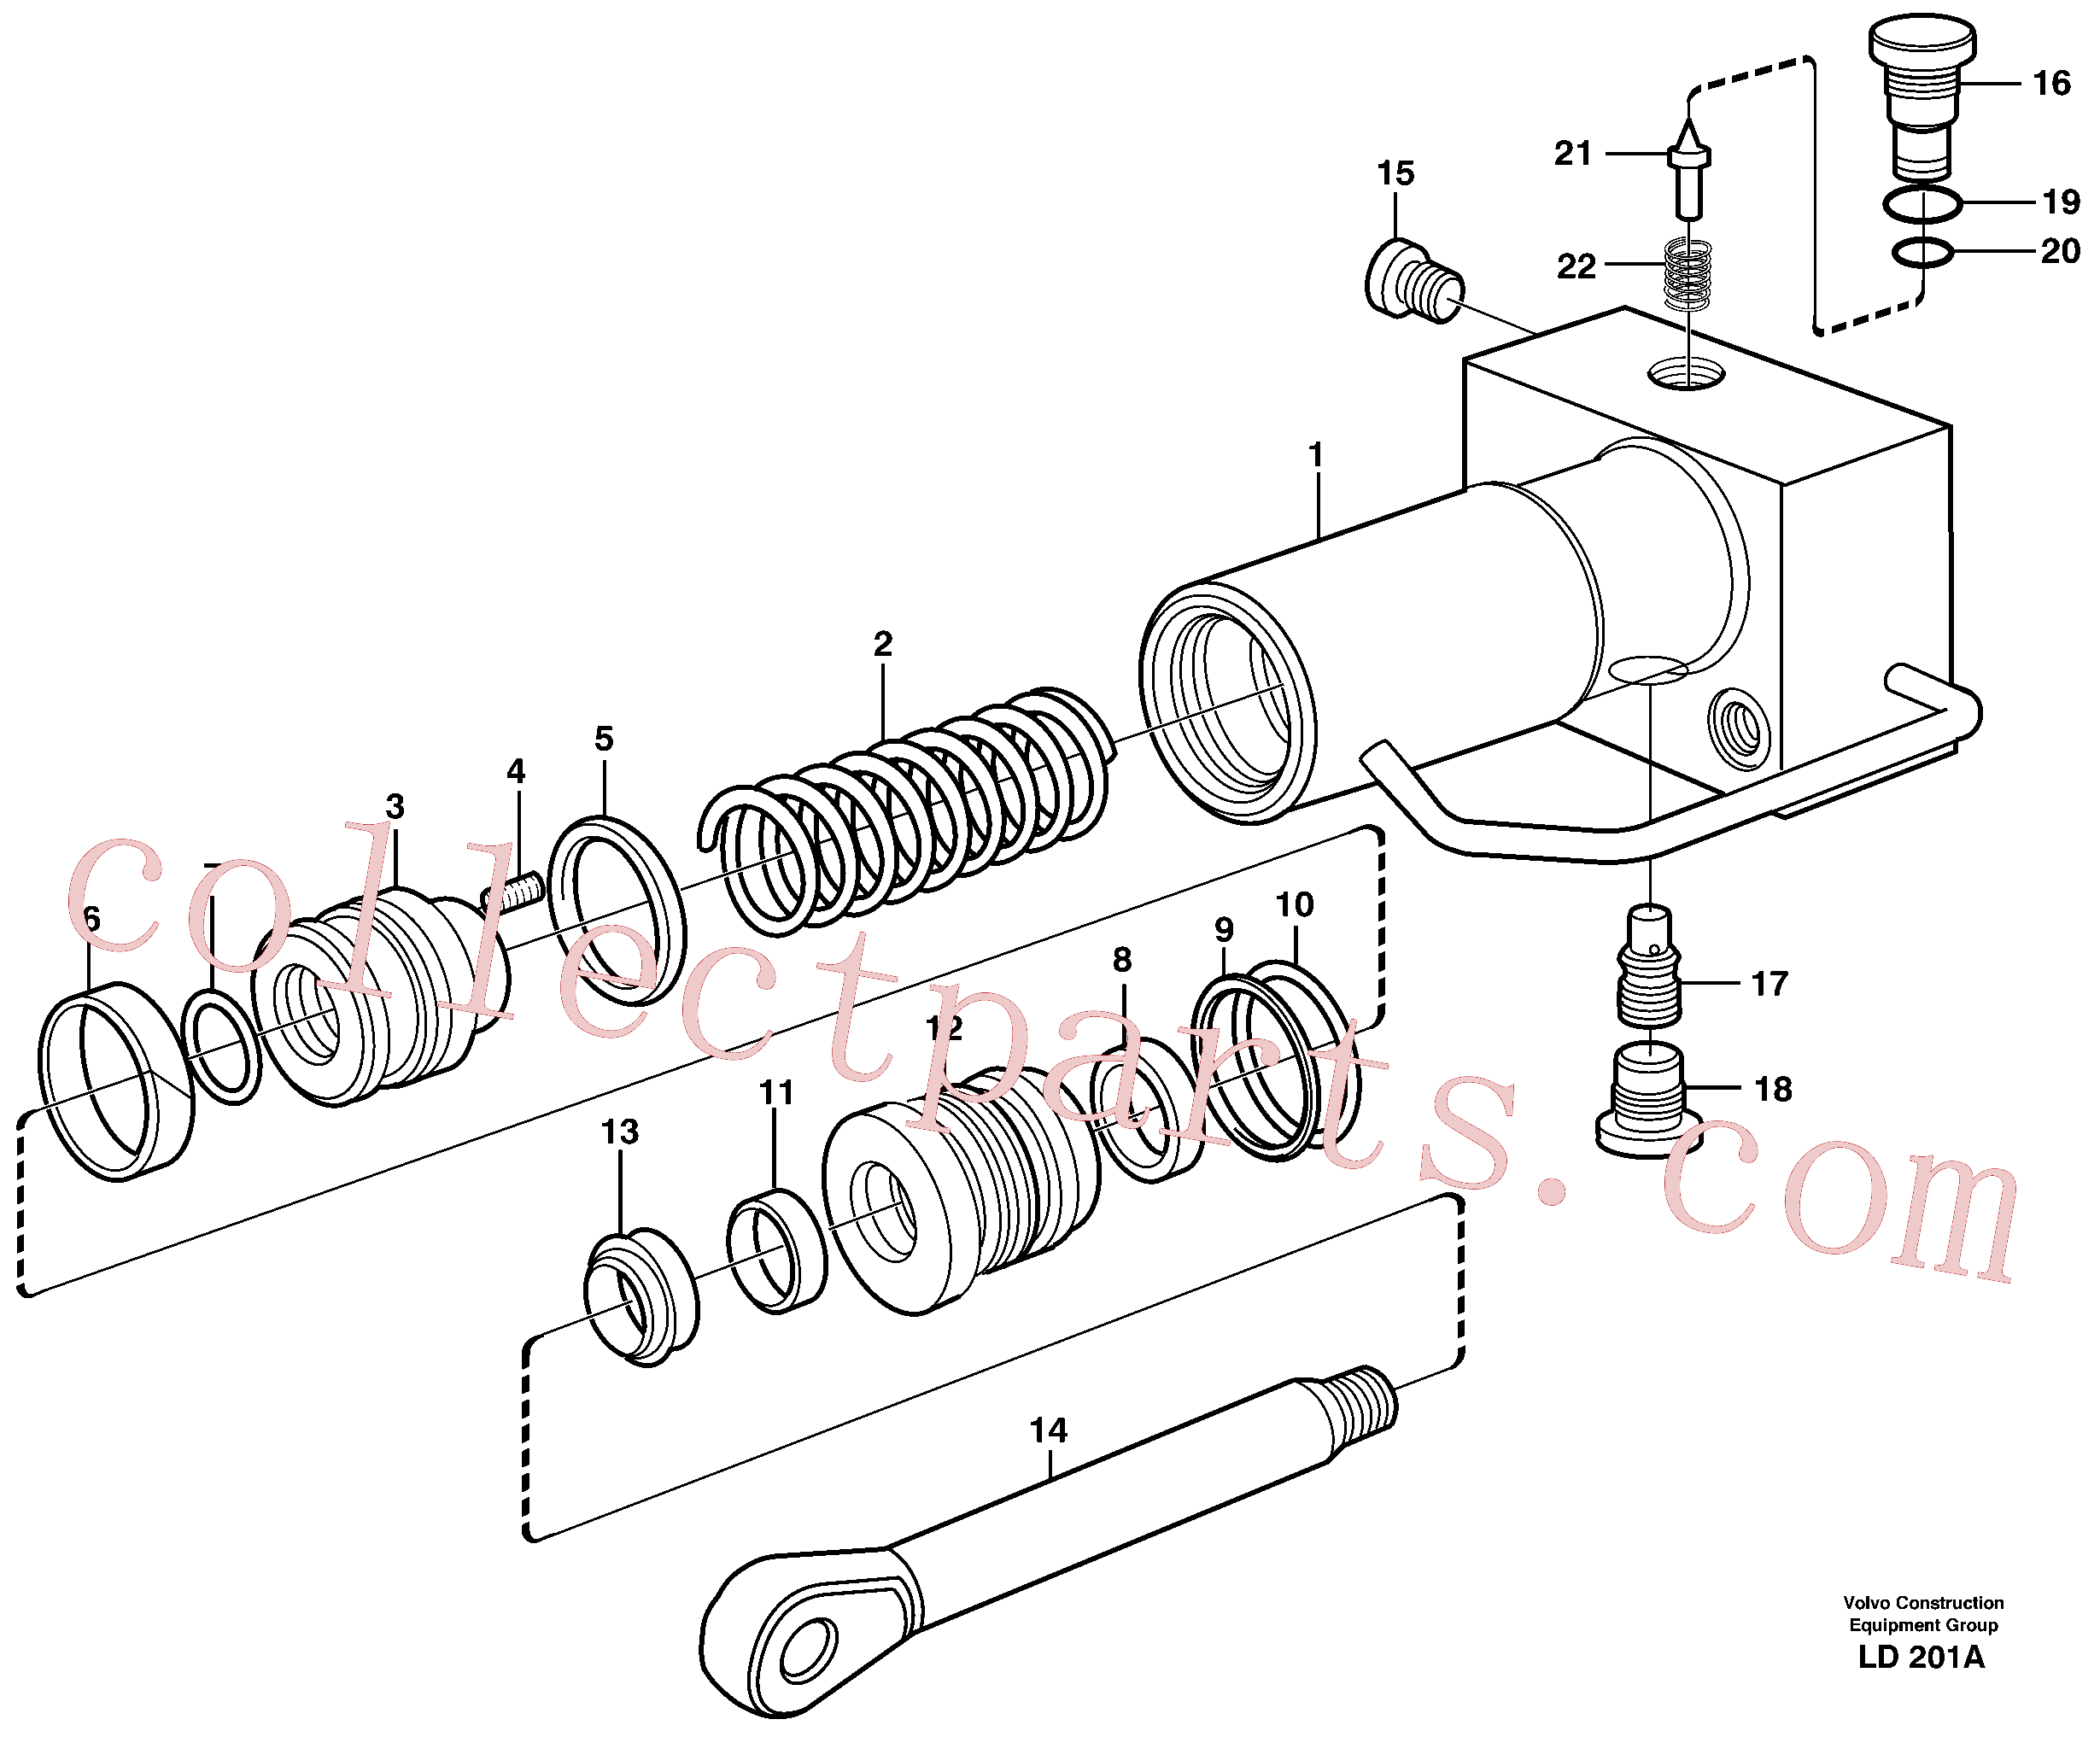 VOE11707591 for Volvo Hydraulic cylinder, quick attachment(LD201A assembly)